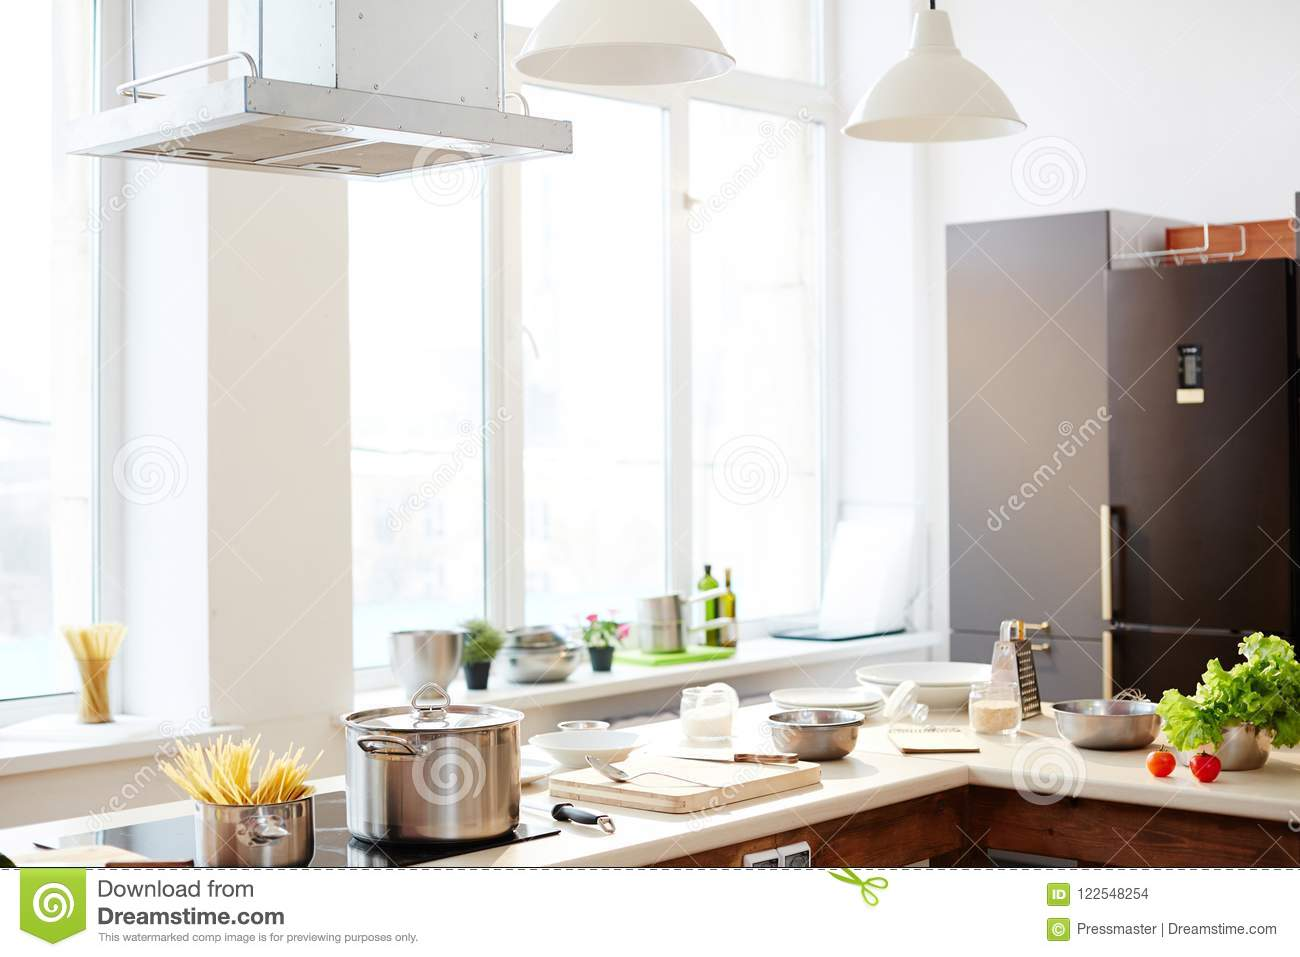 Modern Restaurant Kitchen With Counter Stock Photo Image Of Food Cooking 122548254